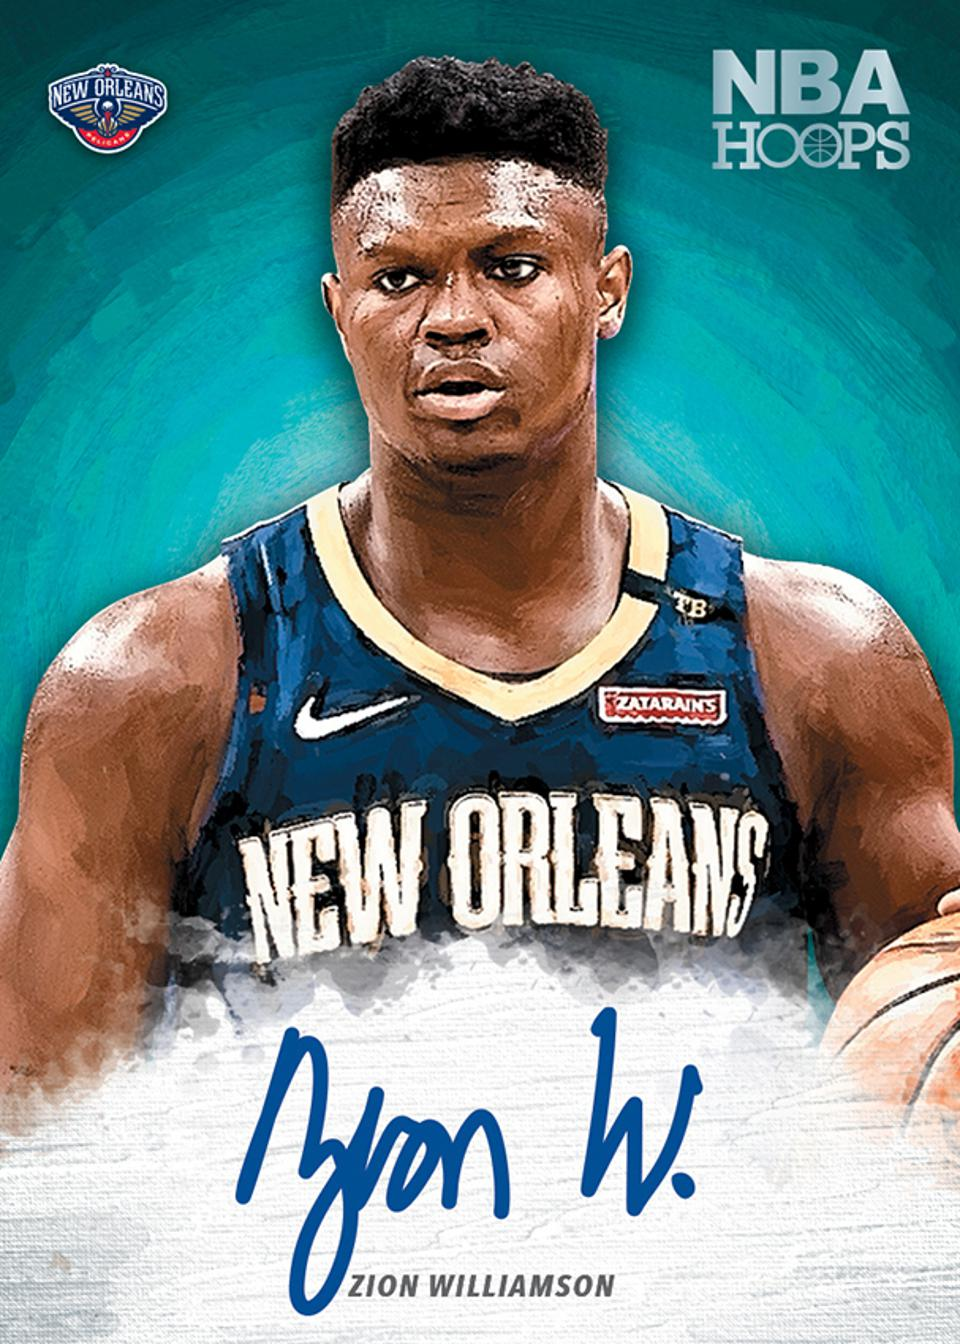 Zion Williamson's NBA Hoops card arrives in mid-October.